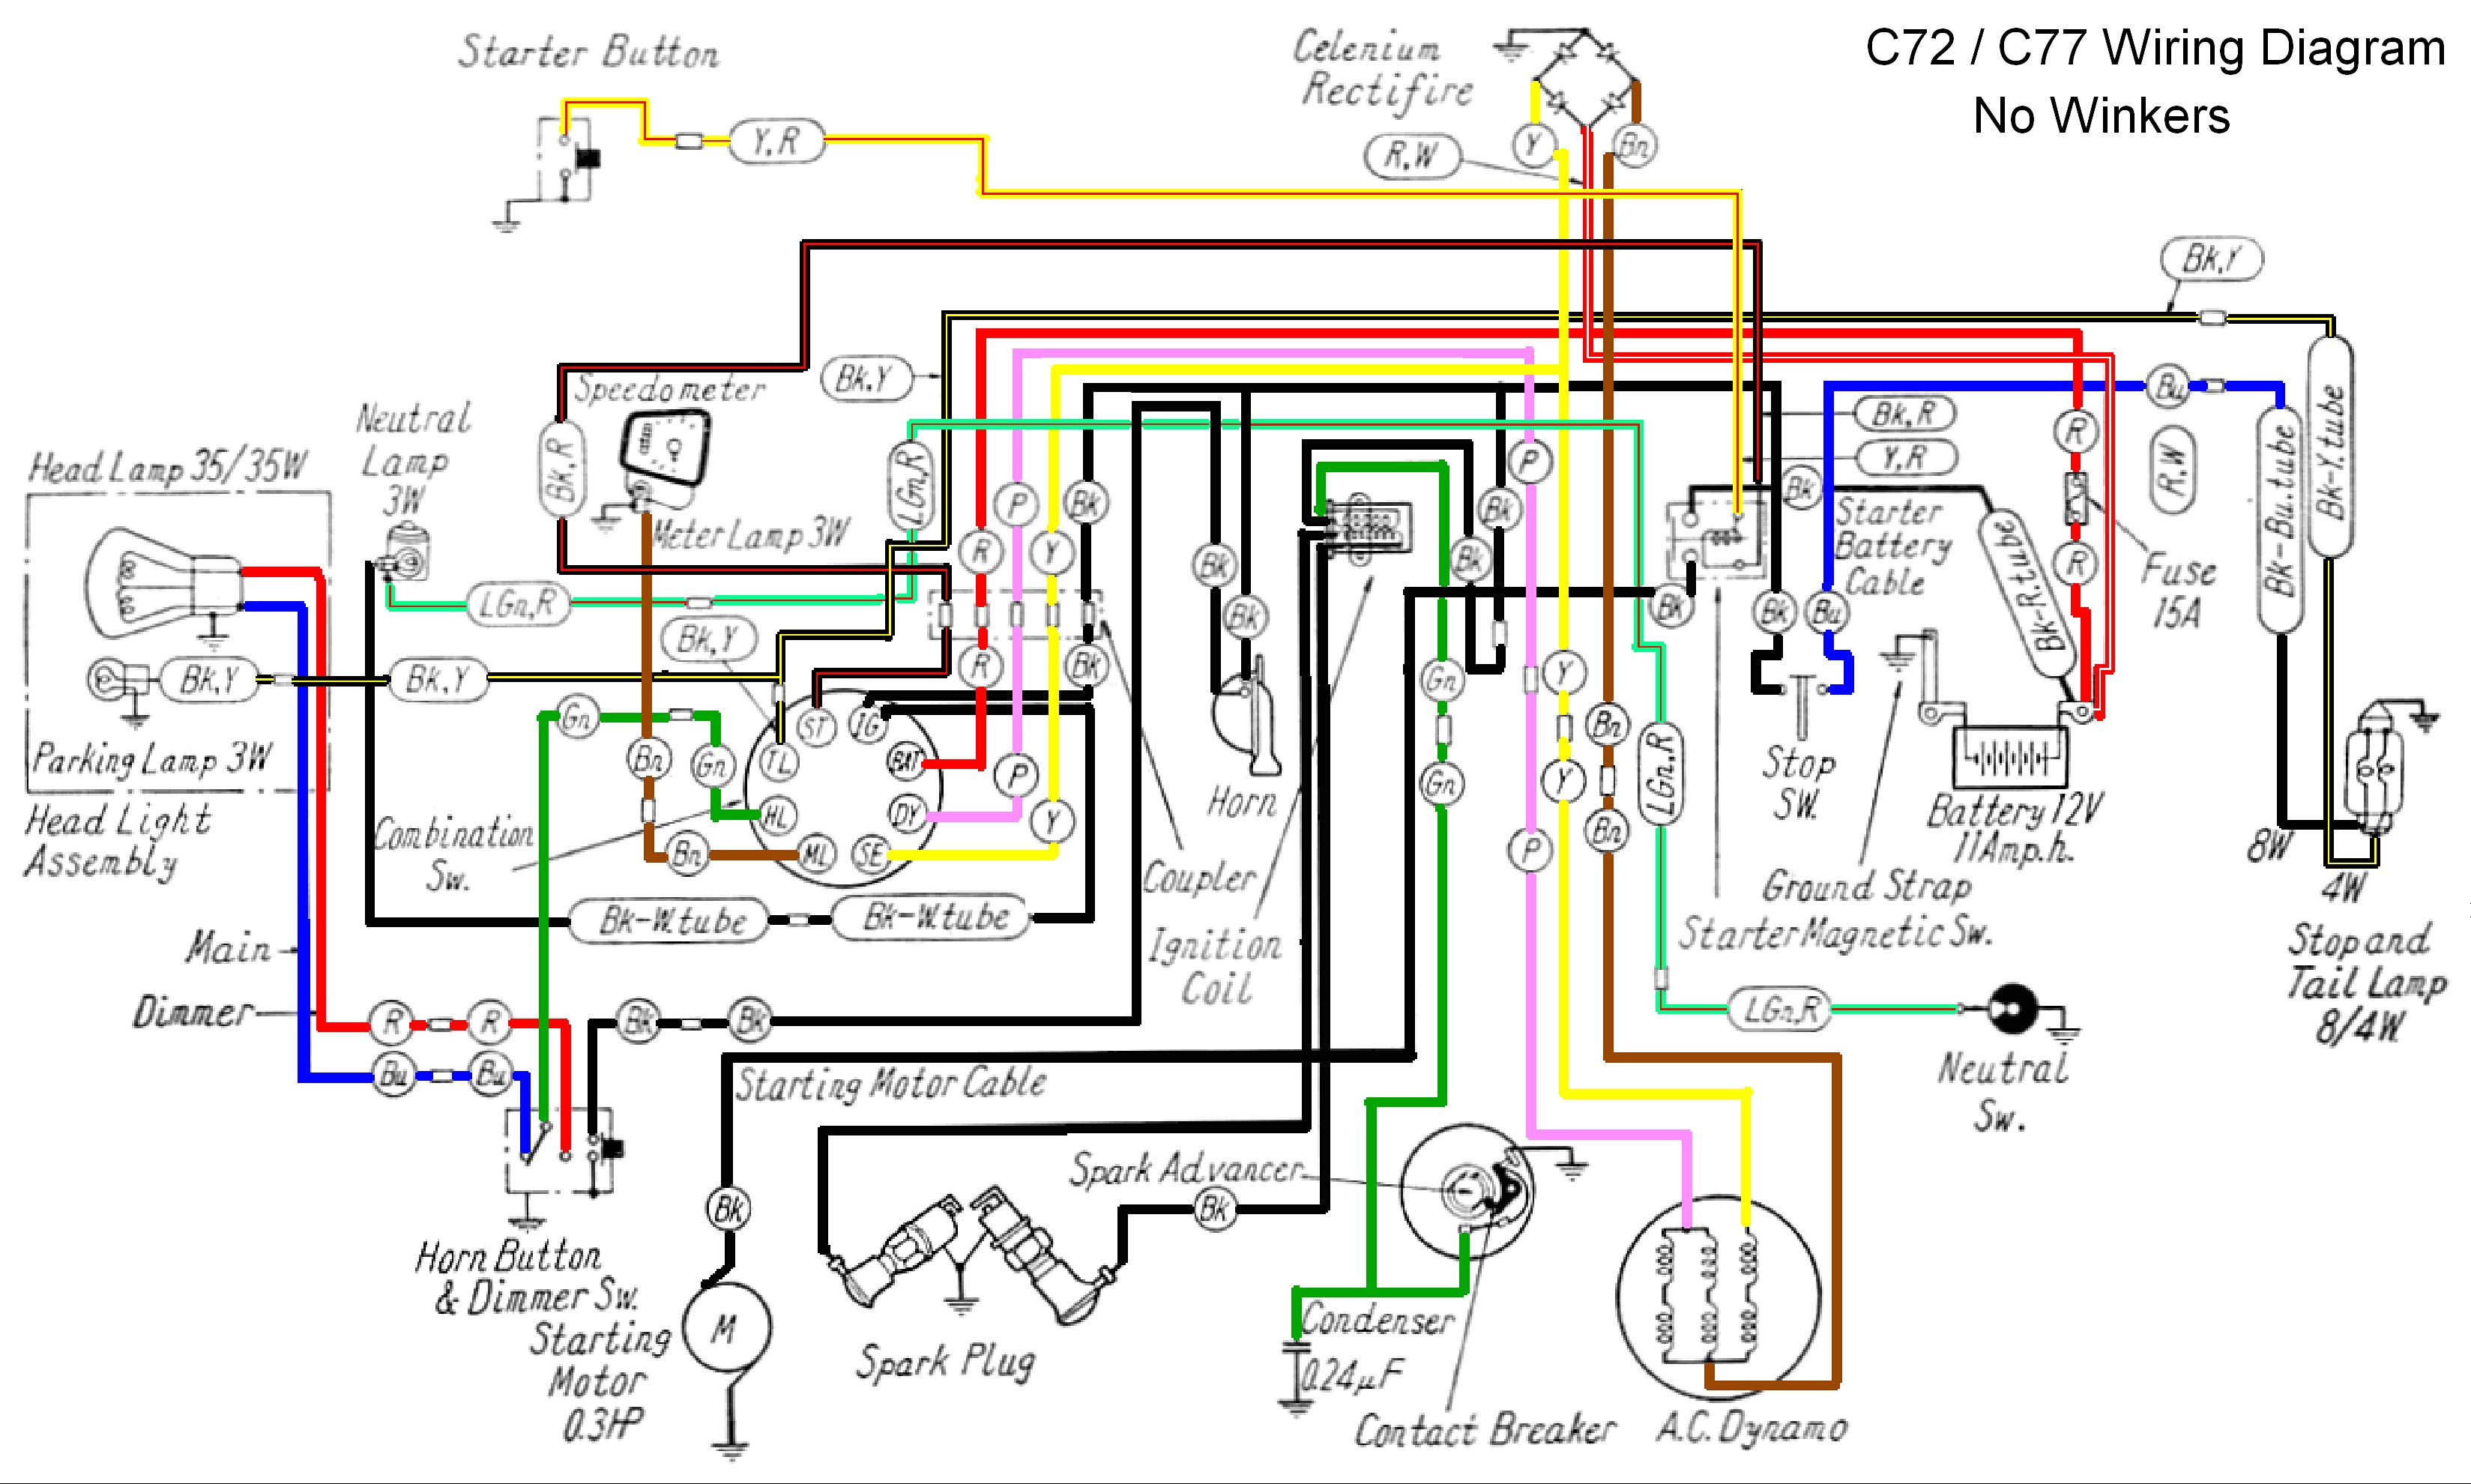 medium resolution of wrg 3124 cn250 wiring diagram 1982 honda nc50 wiring diagram wire data schema